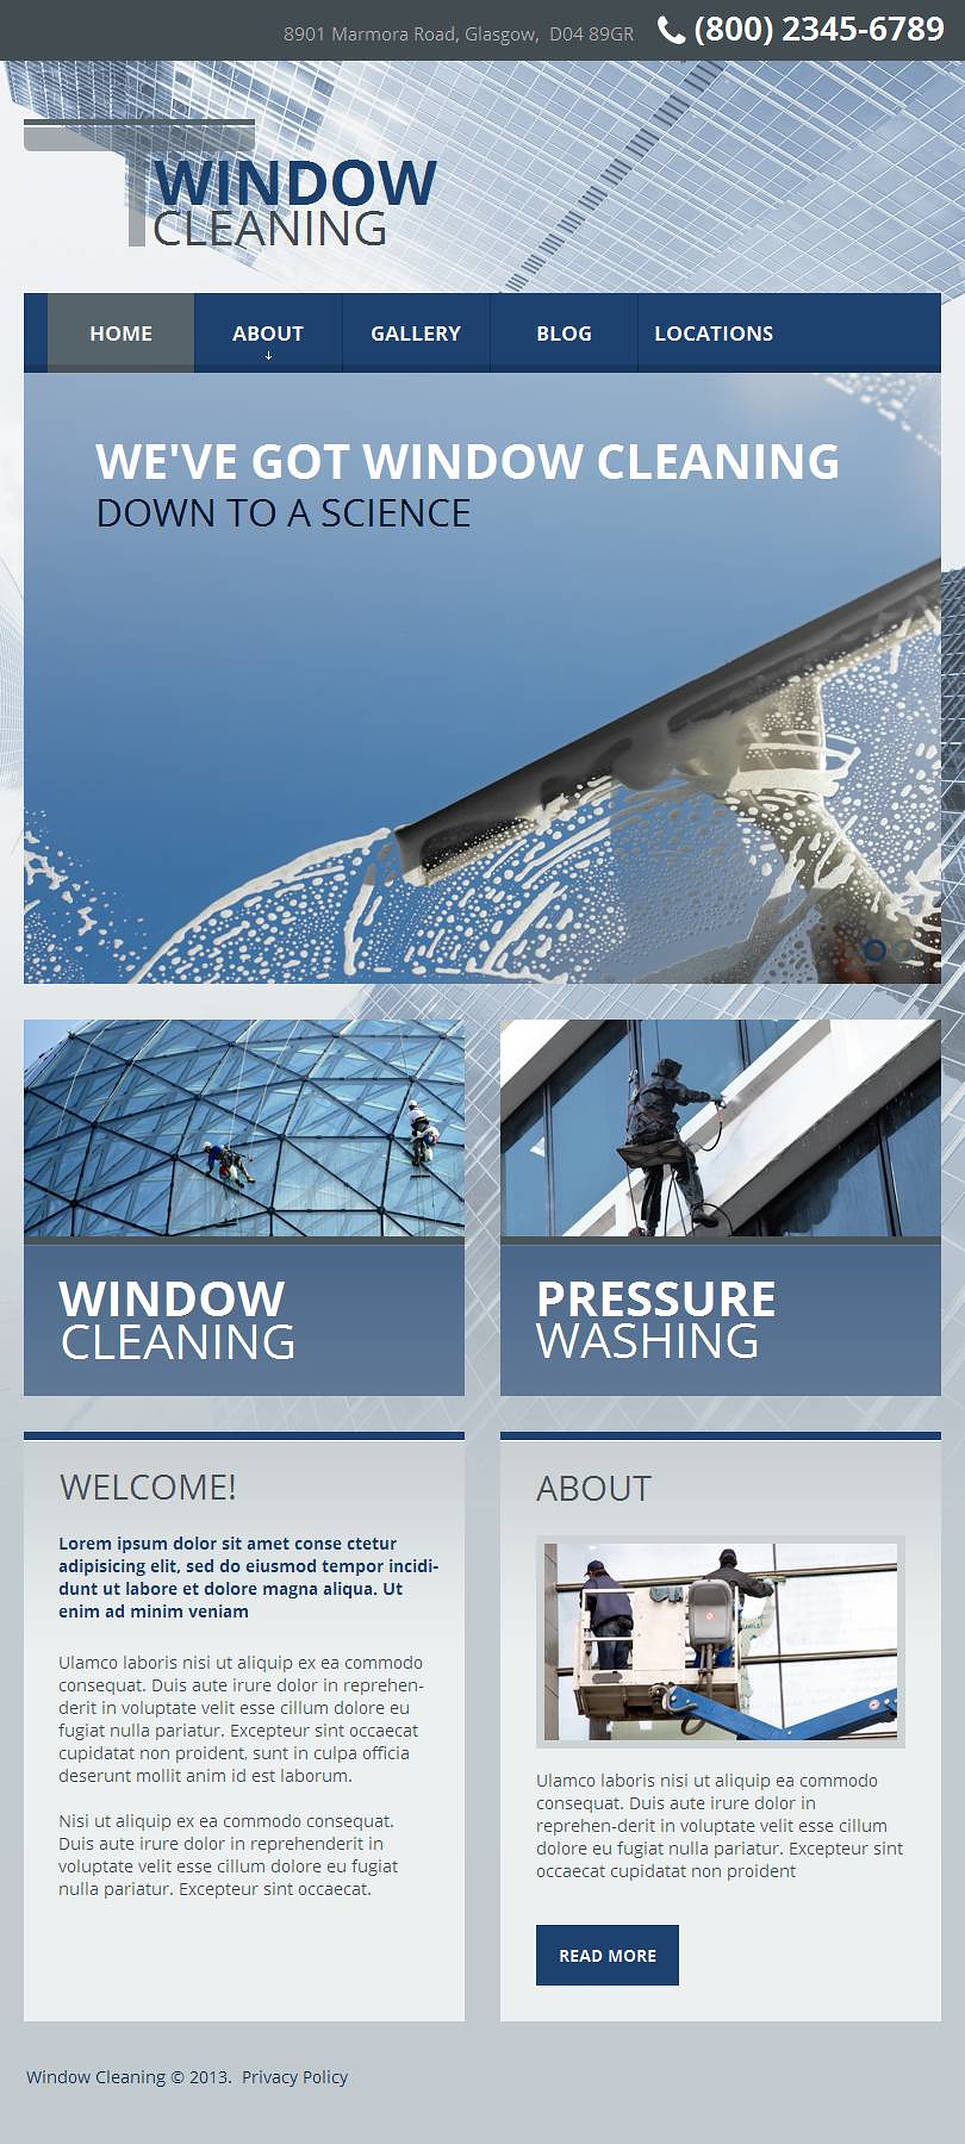 window cleaning facebook html cms template 45797. Black Bedroom Furniture Sets. Home Design Ideas